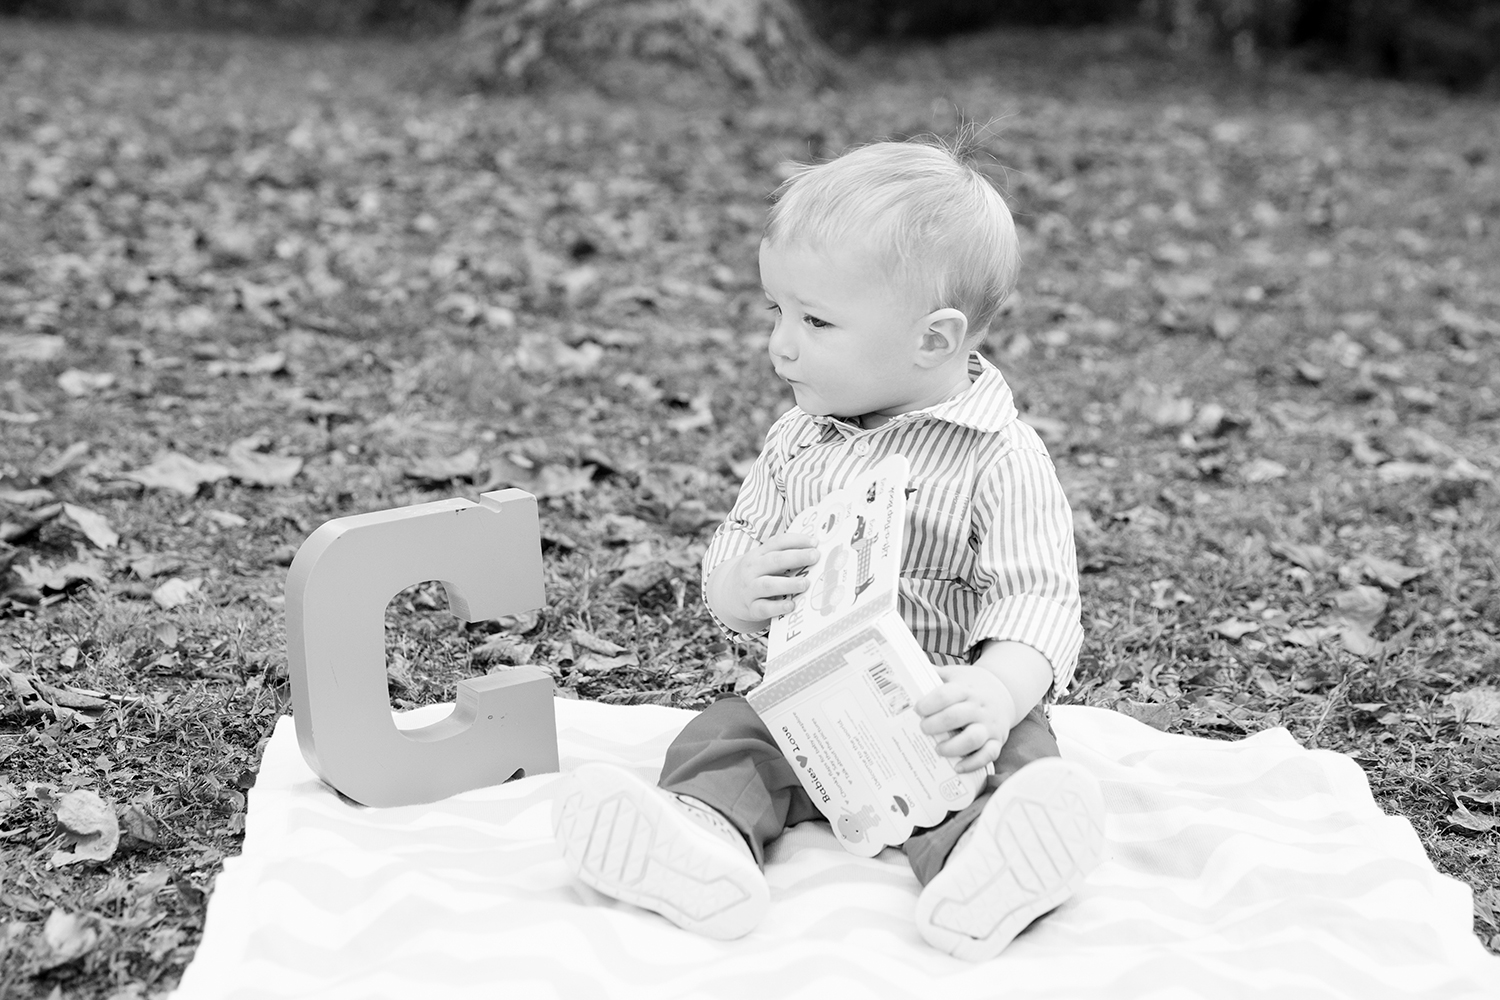 Christophers One Year Old Photos - Image Property of www.j-dphoto.com